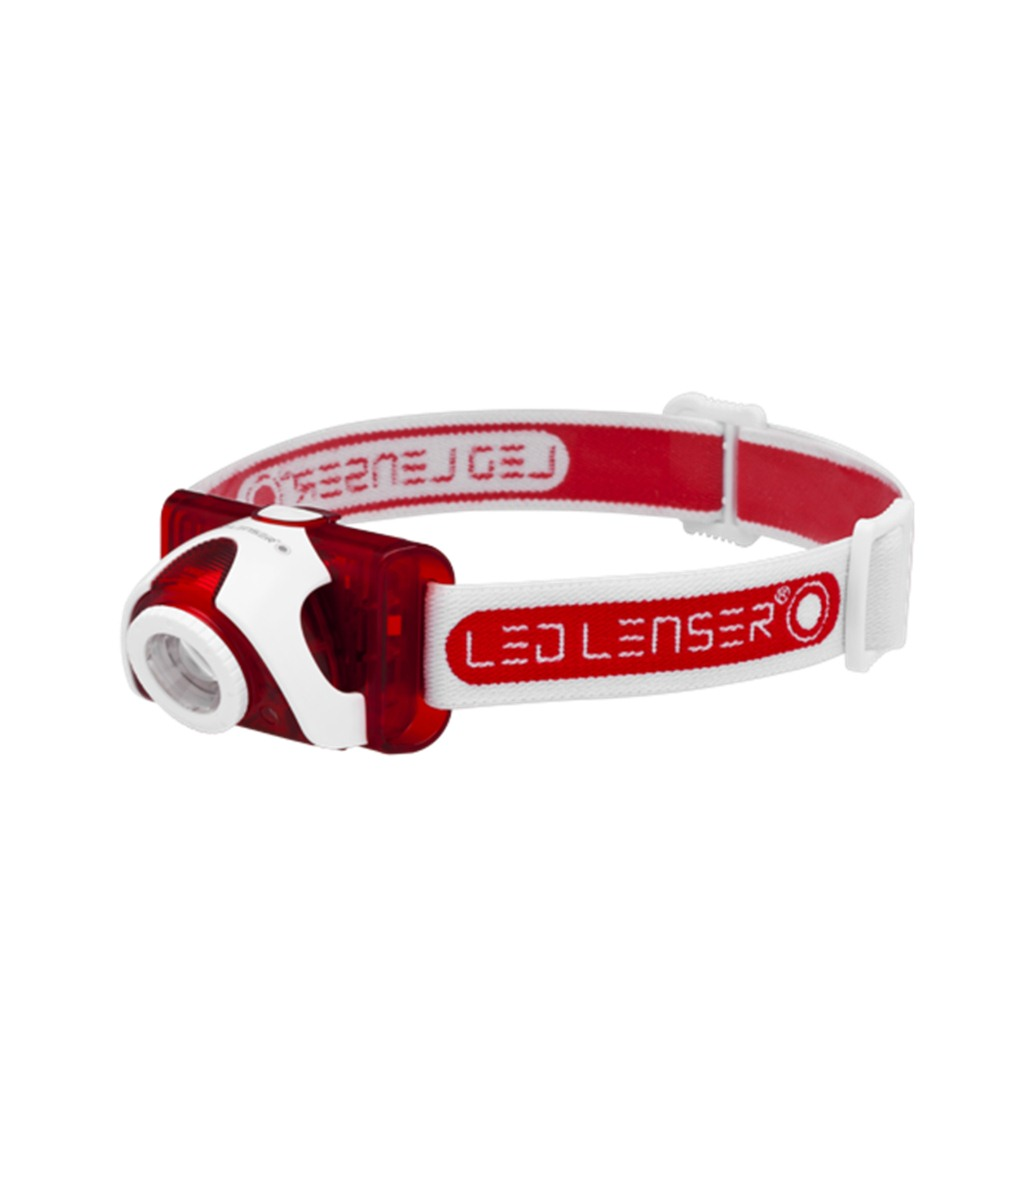 HEADLAMP SEO 5 LED LENSER